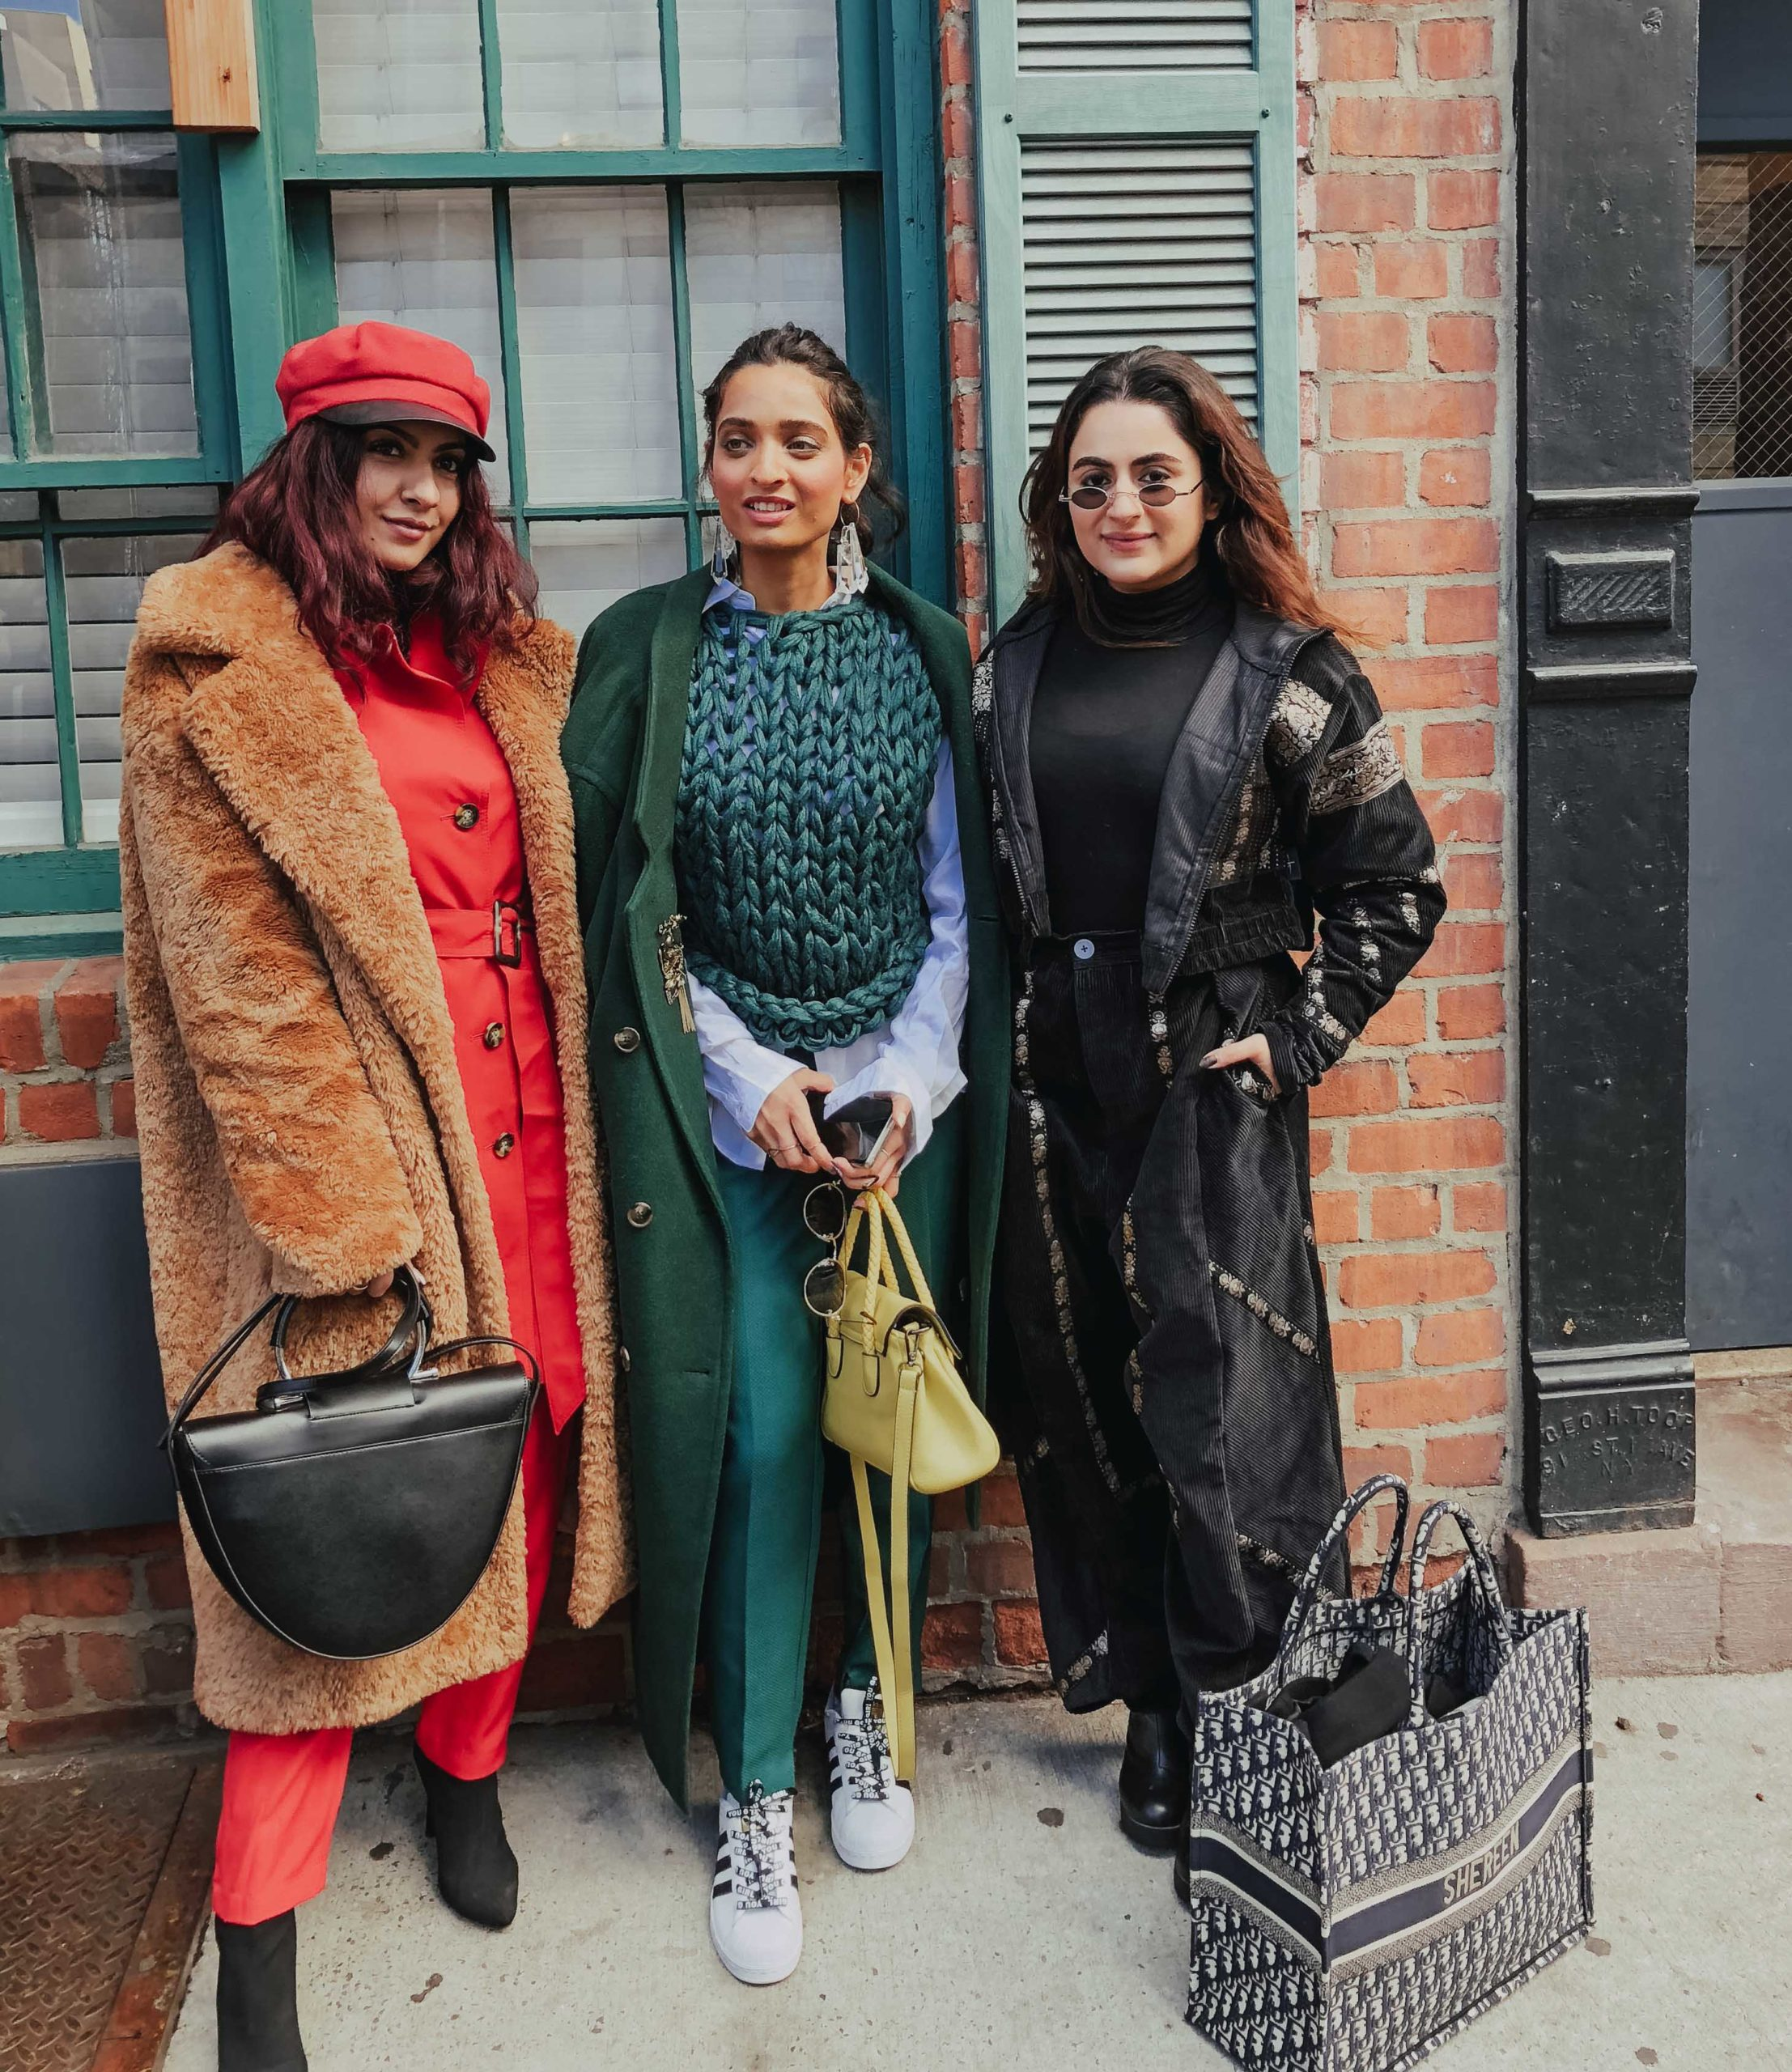 Girl fashion bloggers with streetystyle outfits at the new york fashion week 2019